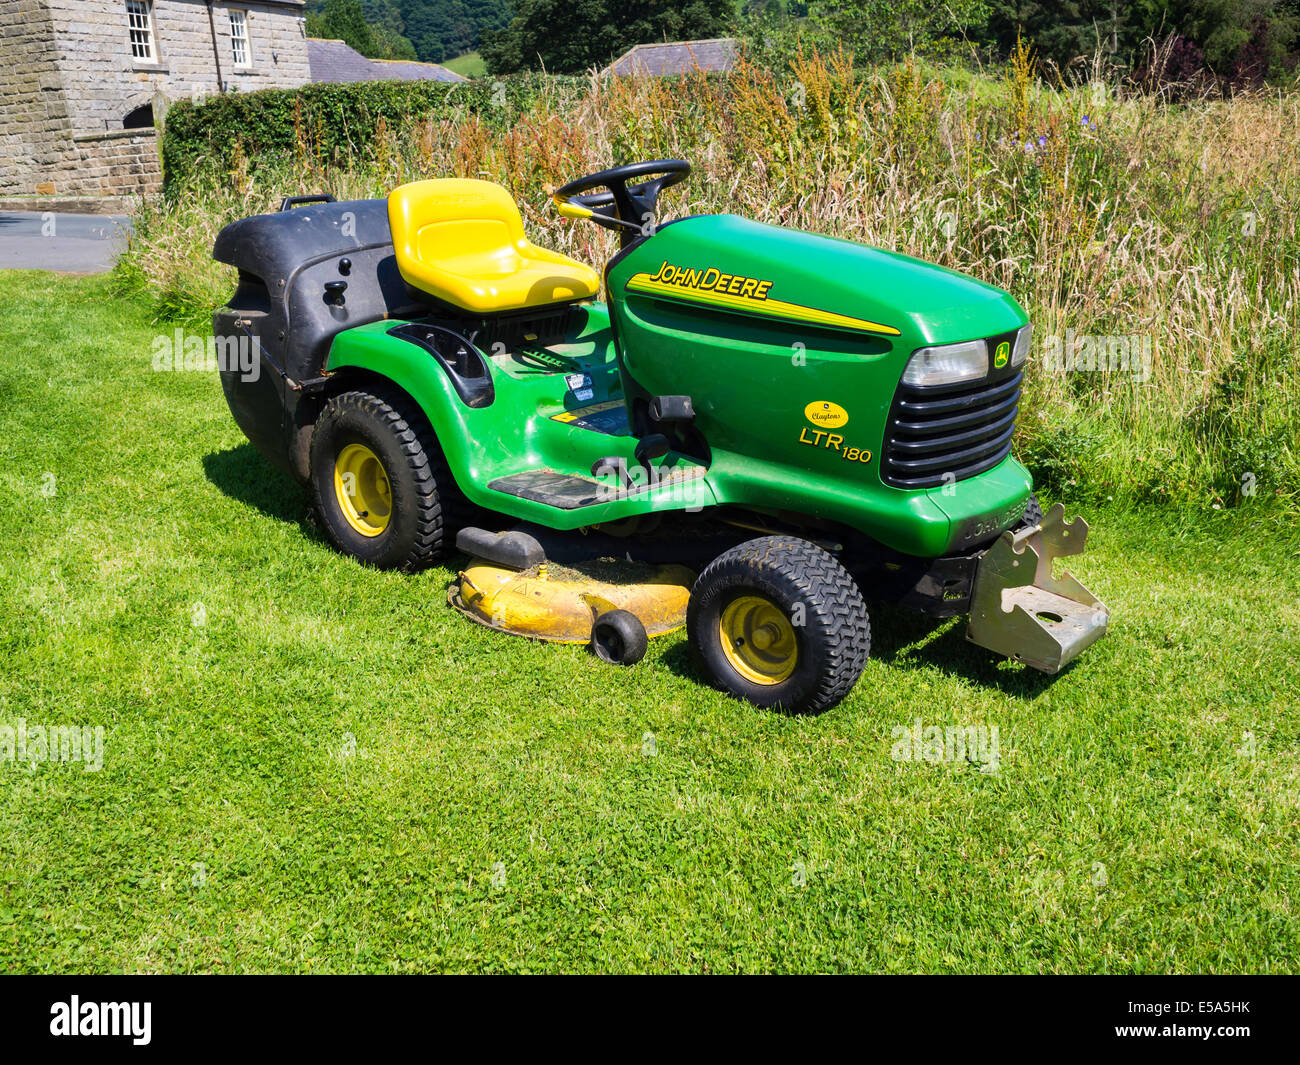 a john deere ltr180 grass mower with an integral grass collector stock photo 72138687 alamy. Black Bedroom Furniture Sets. Home Design Ideas